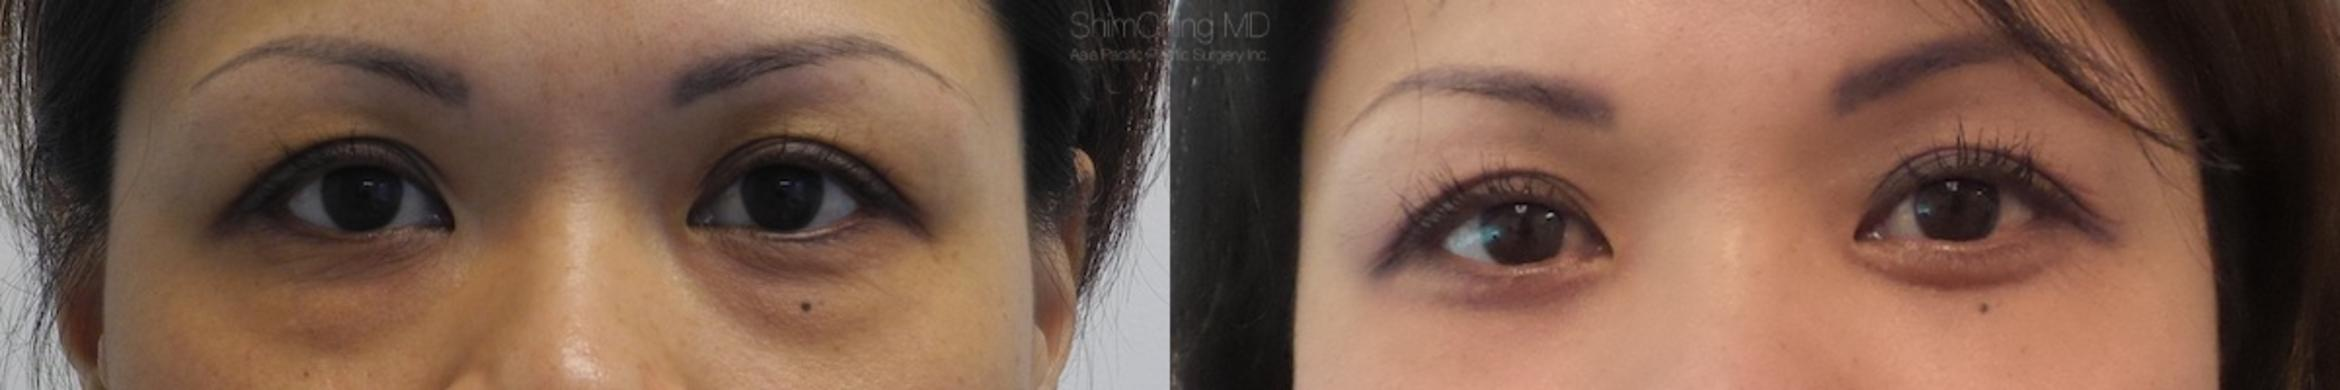 Eyelid Surgery Case 23 Before & After View #1 | Honolulu, HI | Shim Ching, MD: Asia Pacific Plastic Surgery